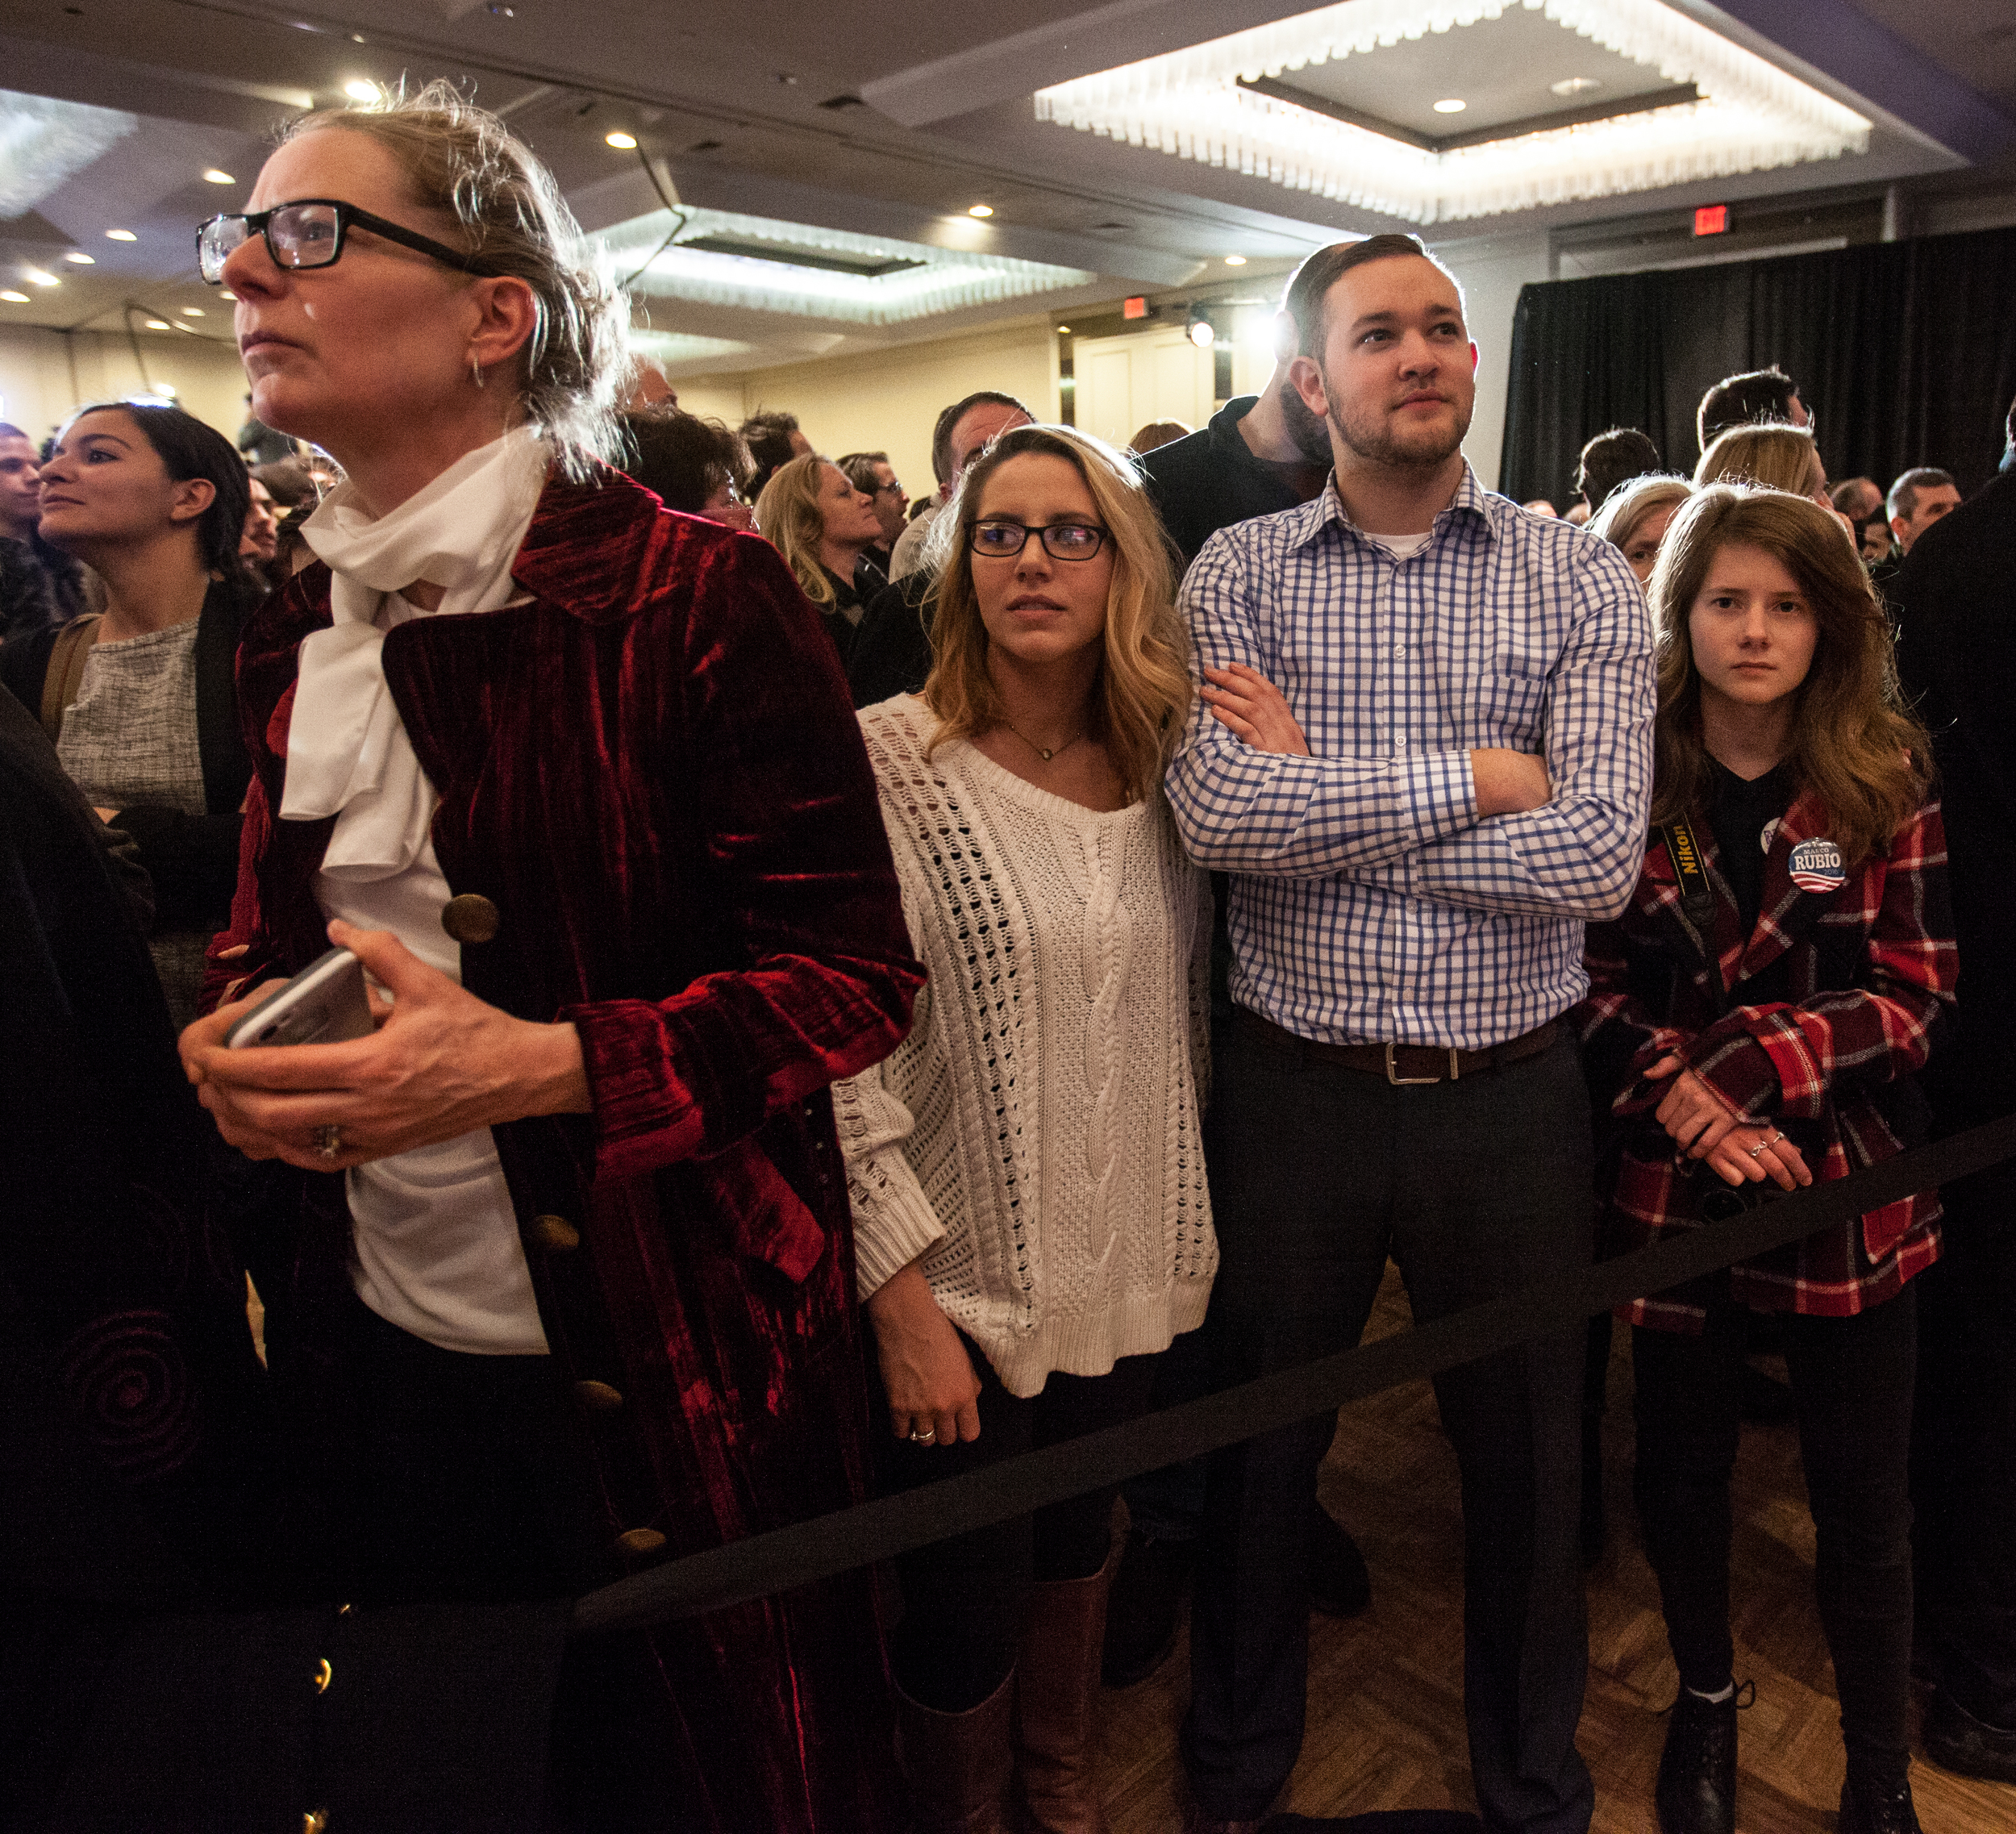 Manchester, NH, Feb. 9, 2016 - (From right) Emma Sheehan of Manchester, Brandon Castle of Albany NY, Chere Choppa of Albany NY, and Ann Lane of Durham NH, wait for primary voting results to come in at Marco Rubio's New Hampshire Primary event at the Radisson Hotel. Photo by Alexandra Wimley